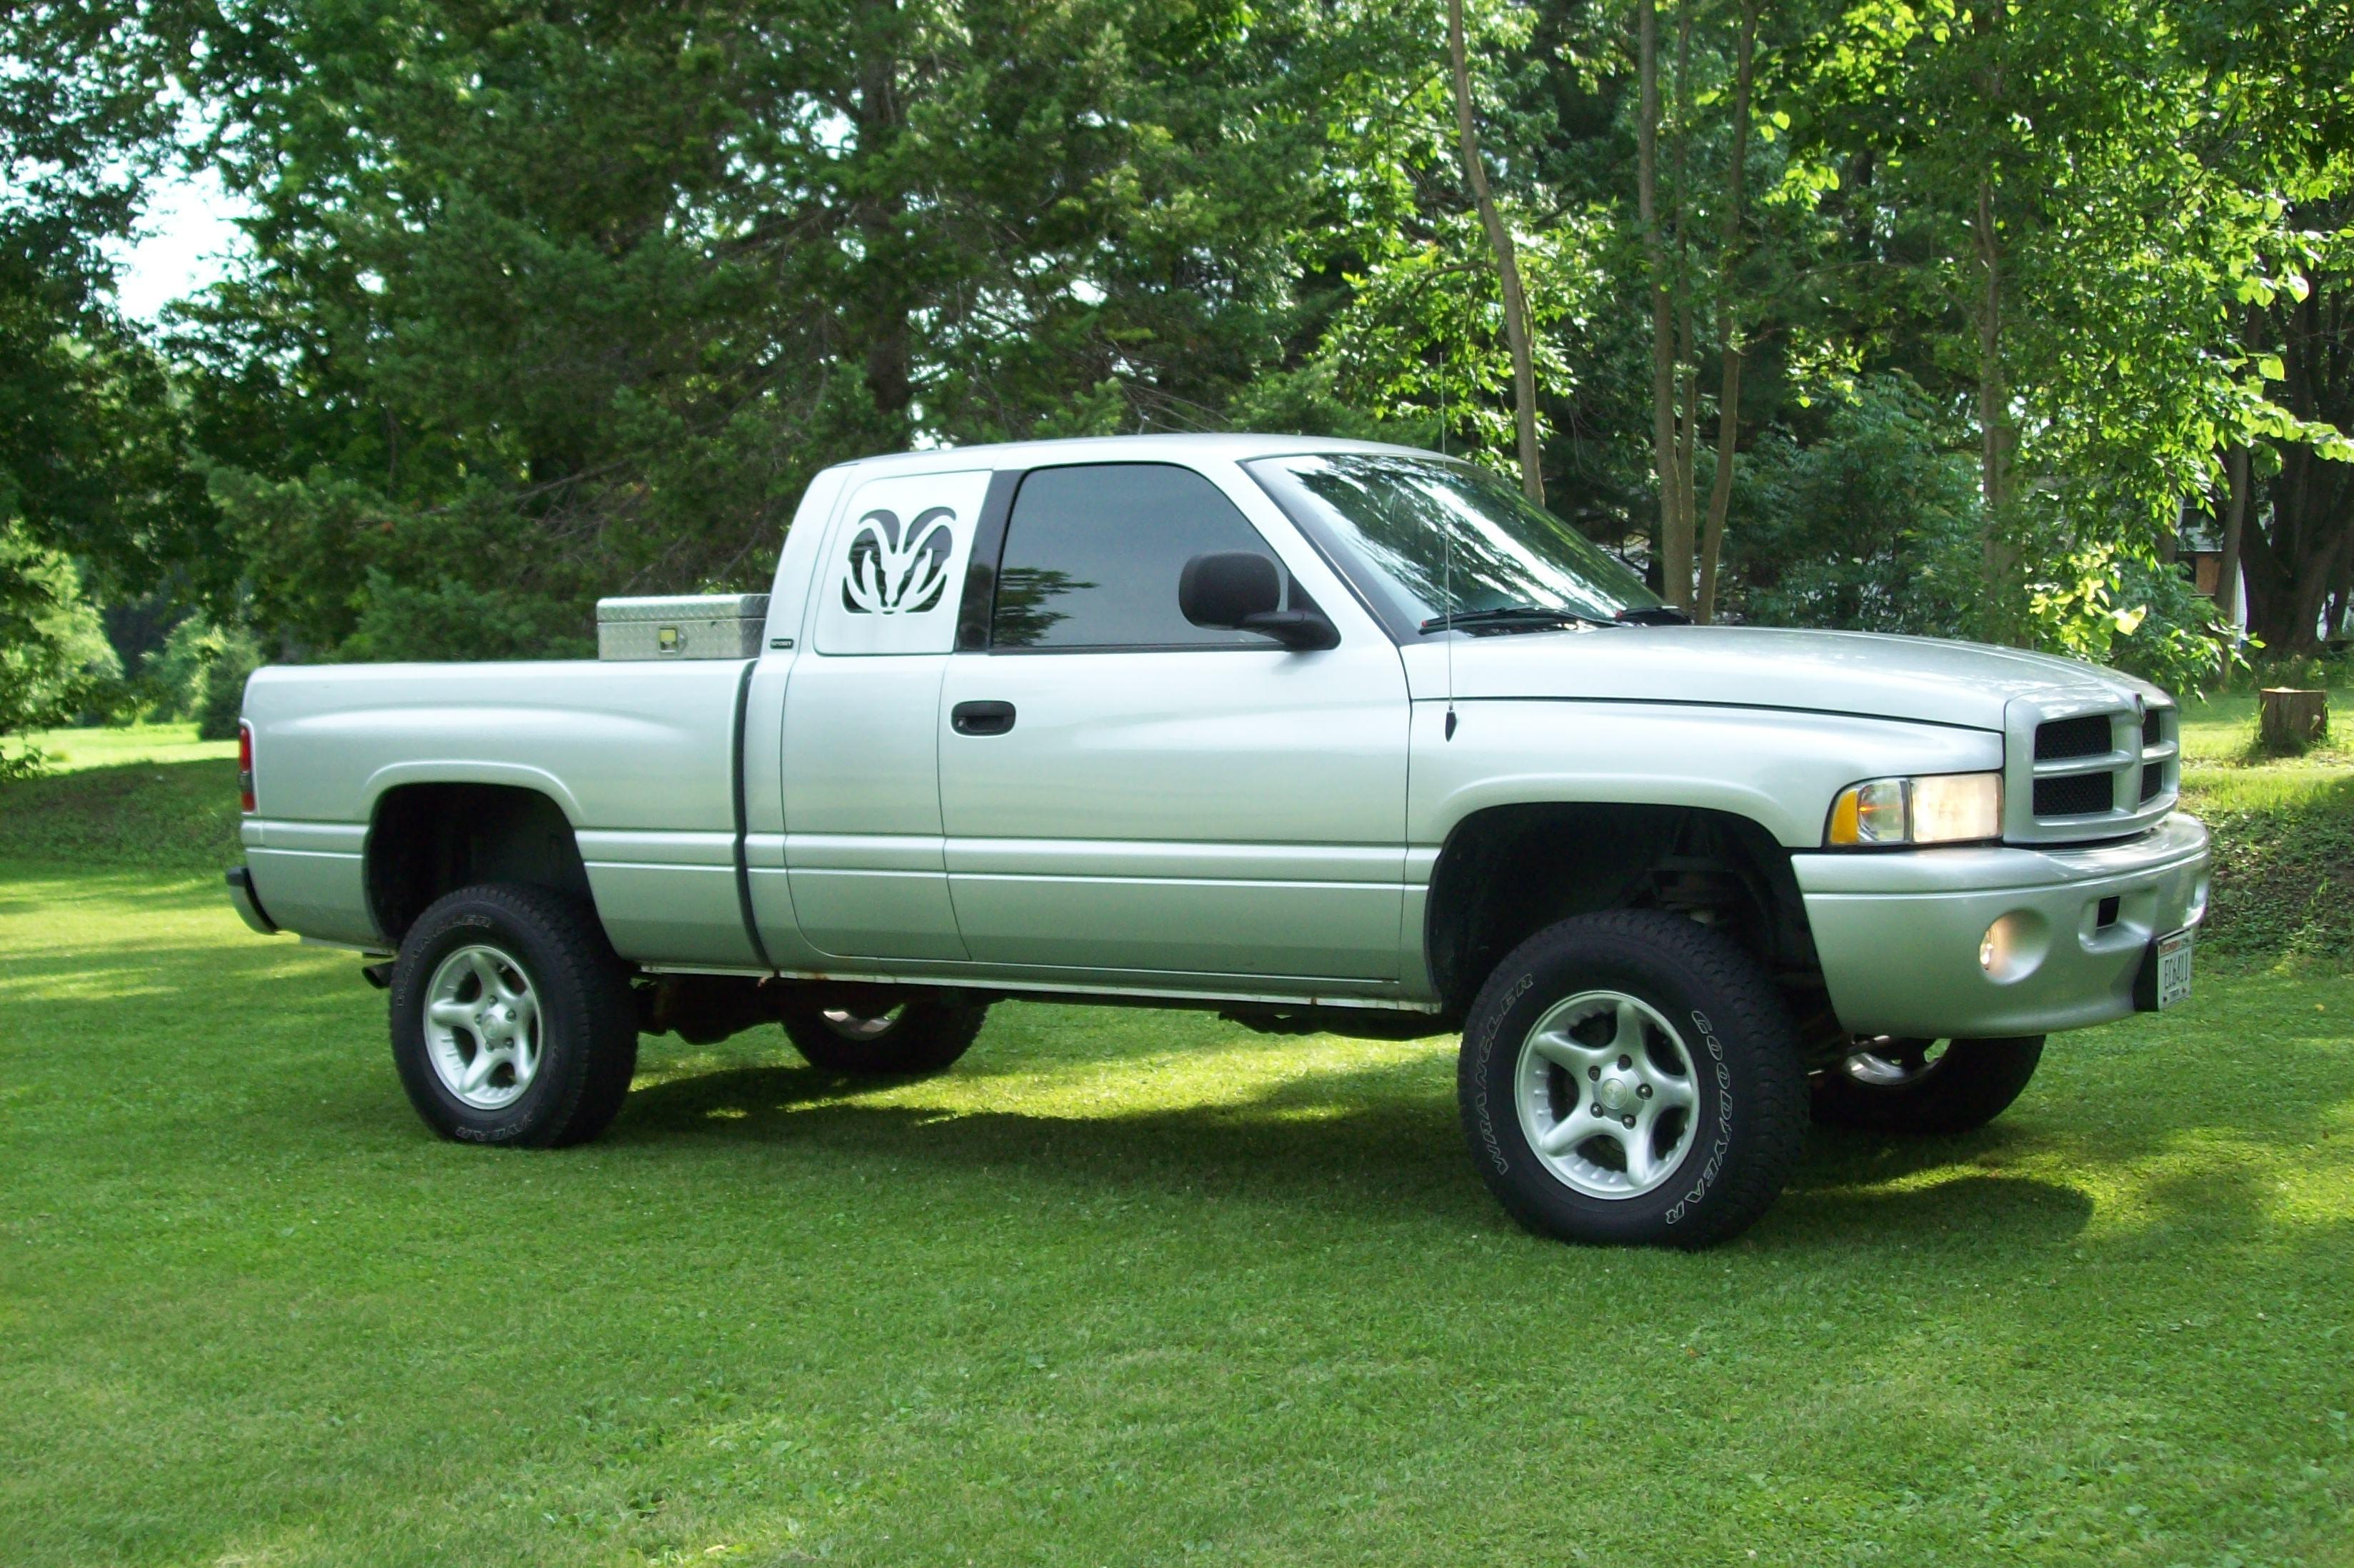 medium resolution of 84coltgtsturbo 2001 dodge ram 1500 quad cab